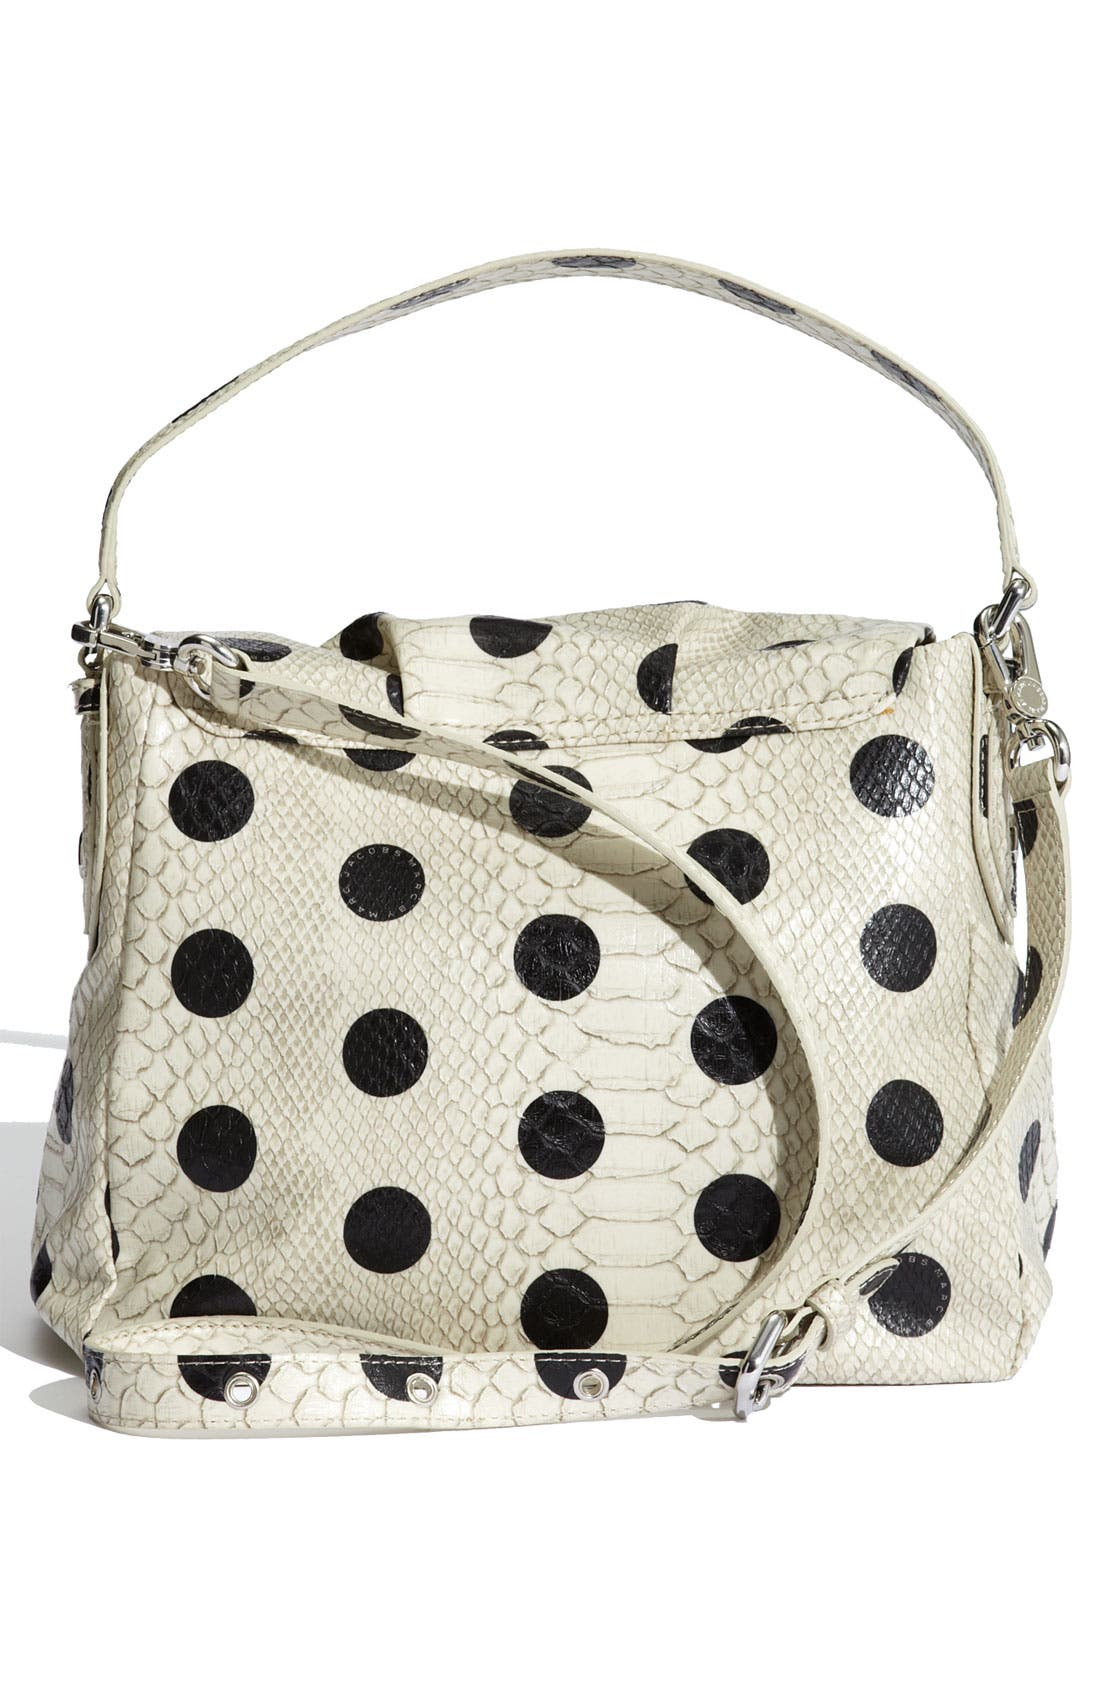 MARC BY MARC JACOBS 'Dotty Snake Little Ukita' Faux Leather Crossbody Bag,                             Alternate thumbnail 4, color,                             Linen Dot Multi